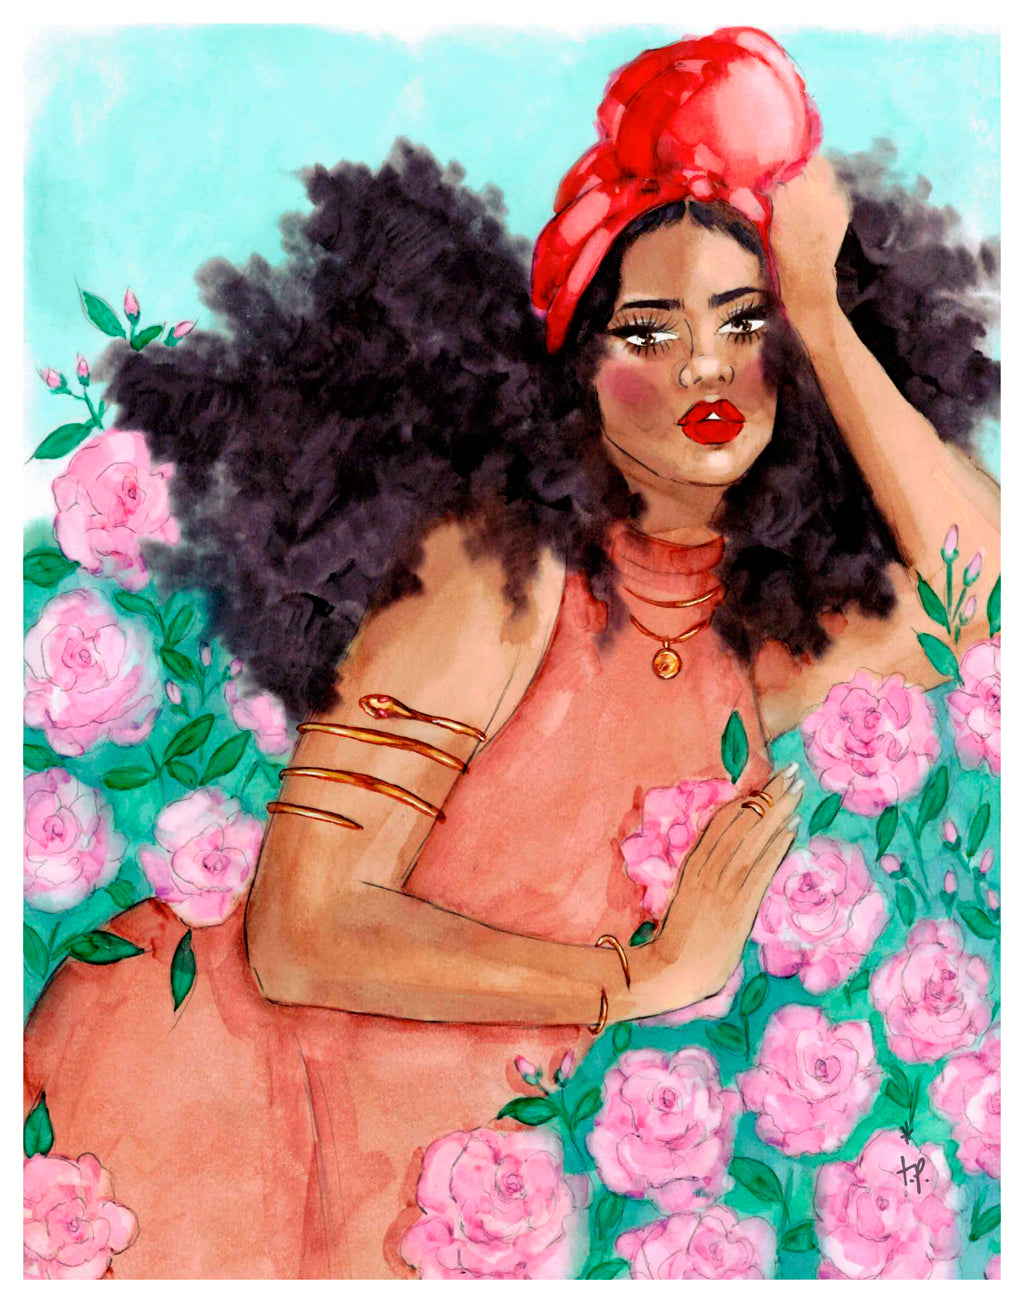 Illustration of a beautiful woman laying in a rose bush by Tatiana Poblah